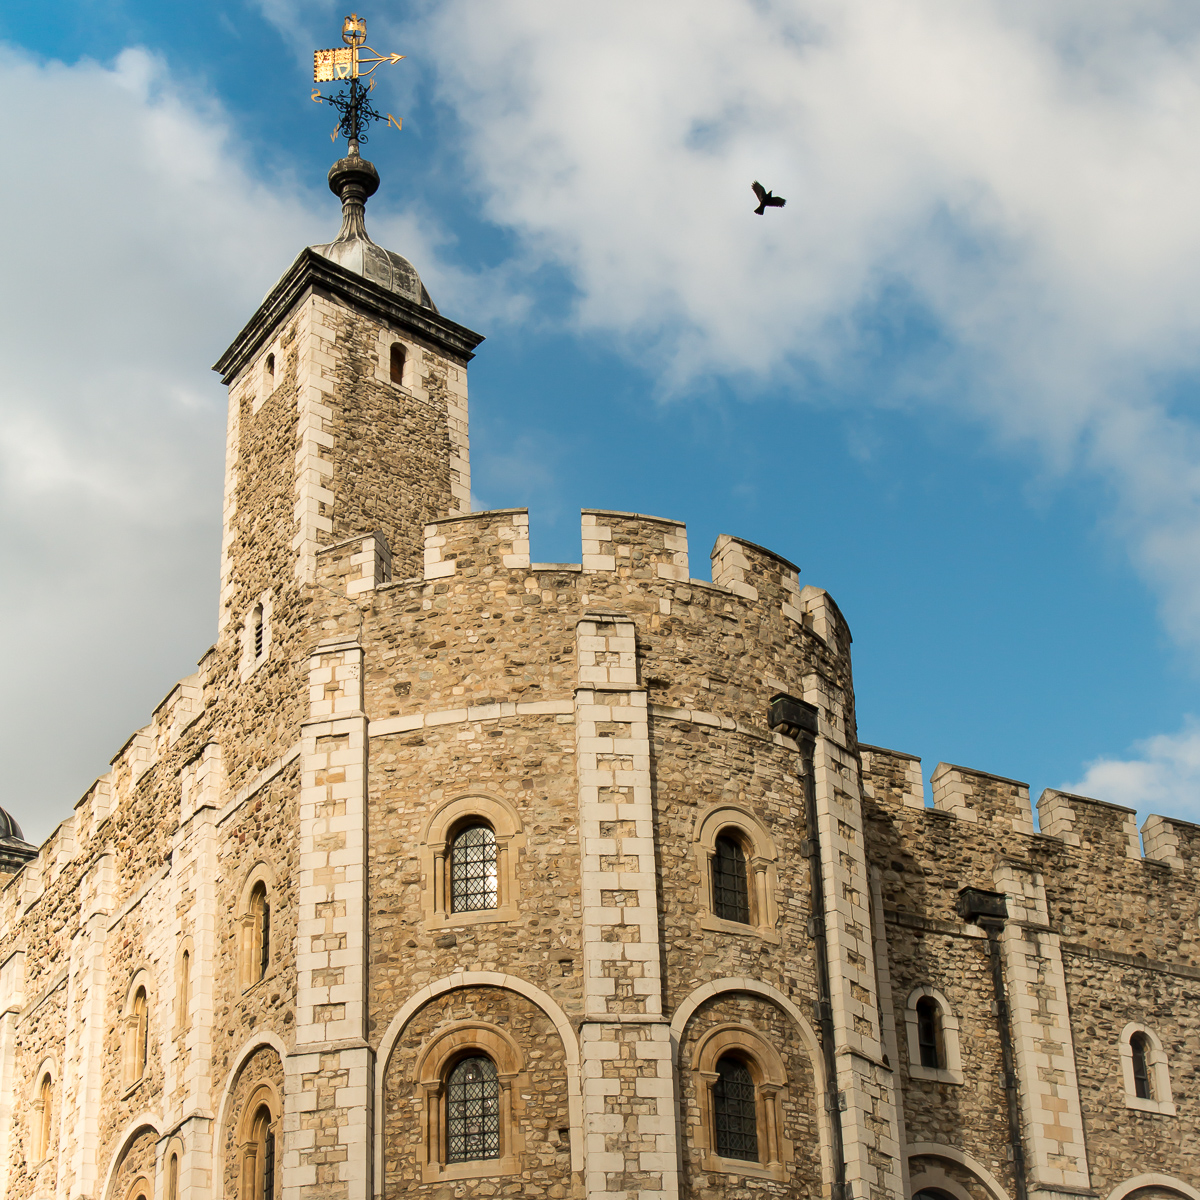 Tower of London and Ravens